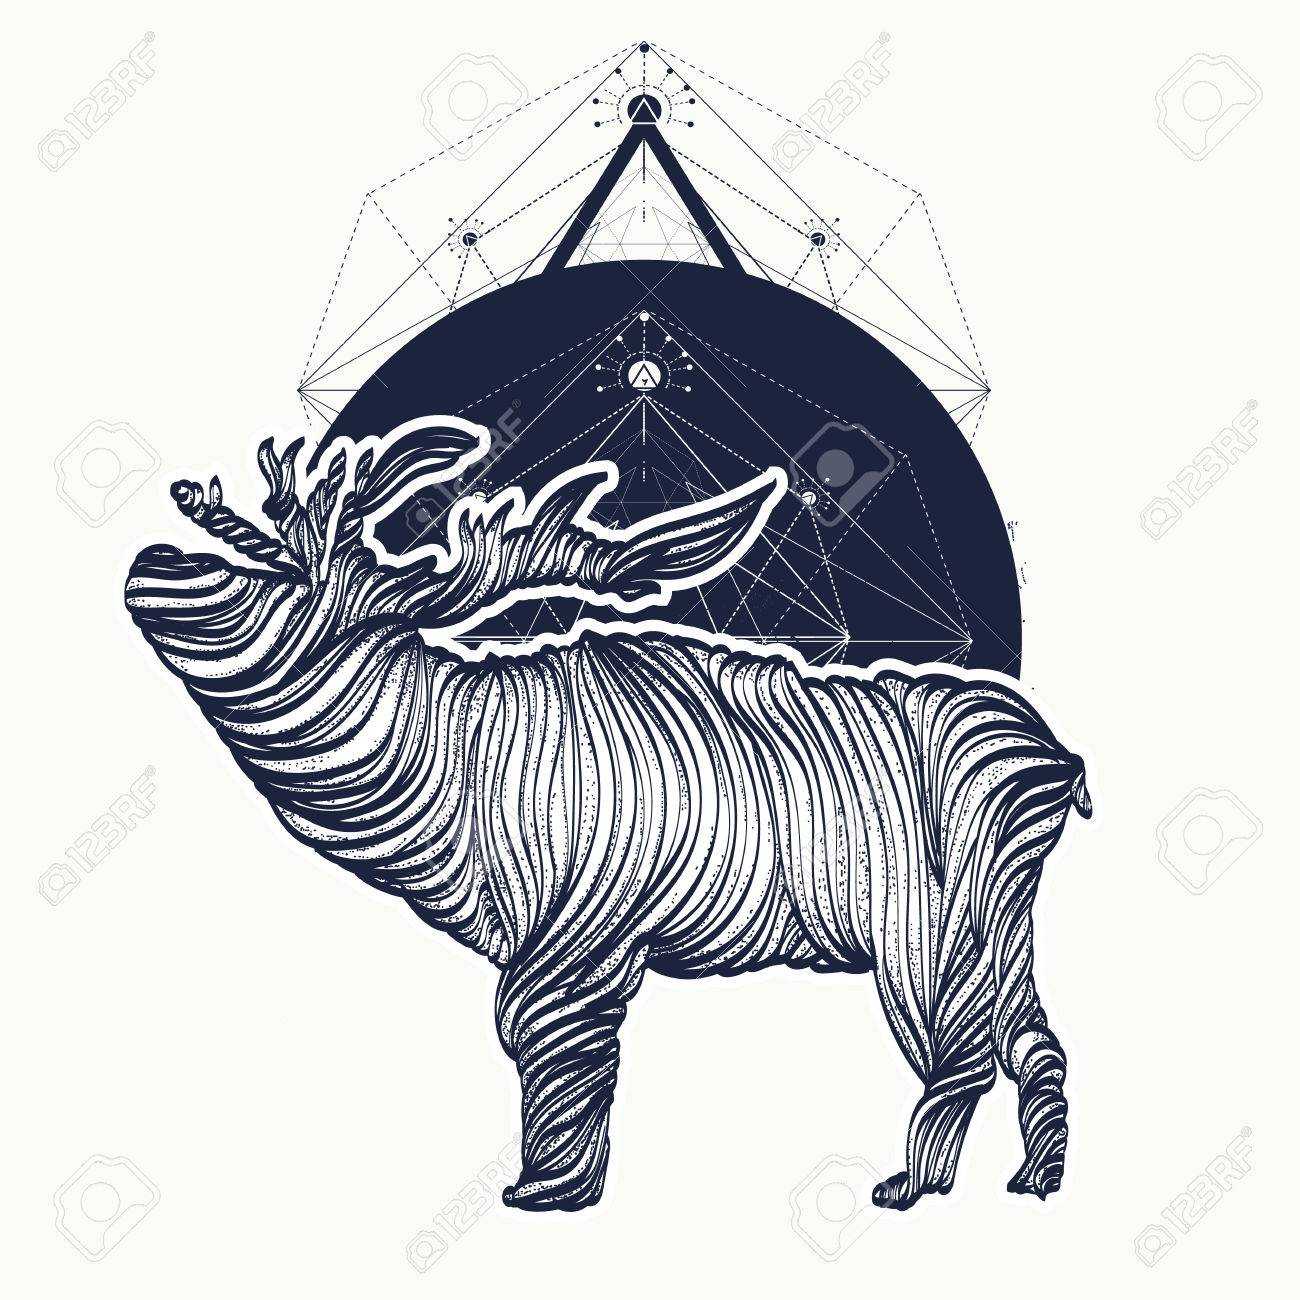 Deer tattoo geometrical style graphics adventure travel deer tattoo geometrical style graphics adventure travel outdoors symbol biocorpaavc Images